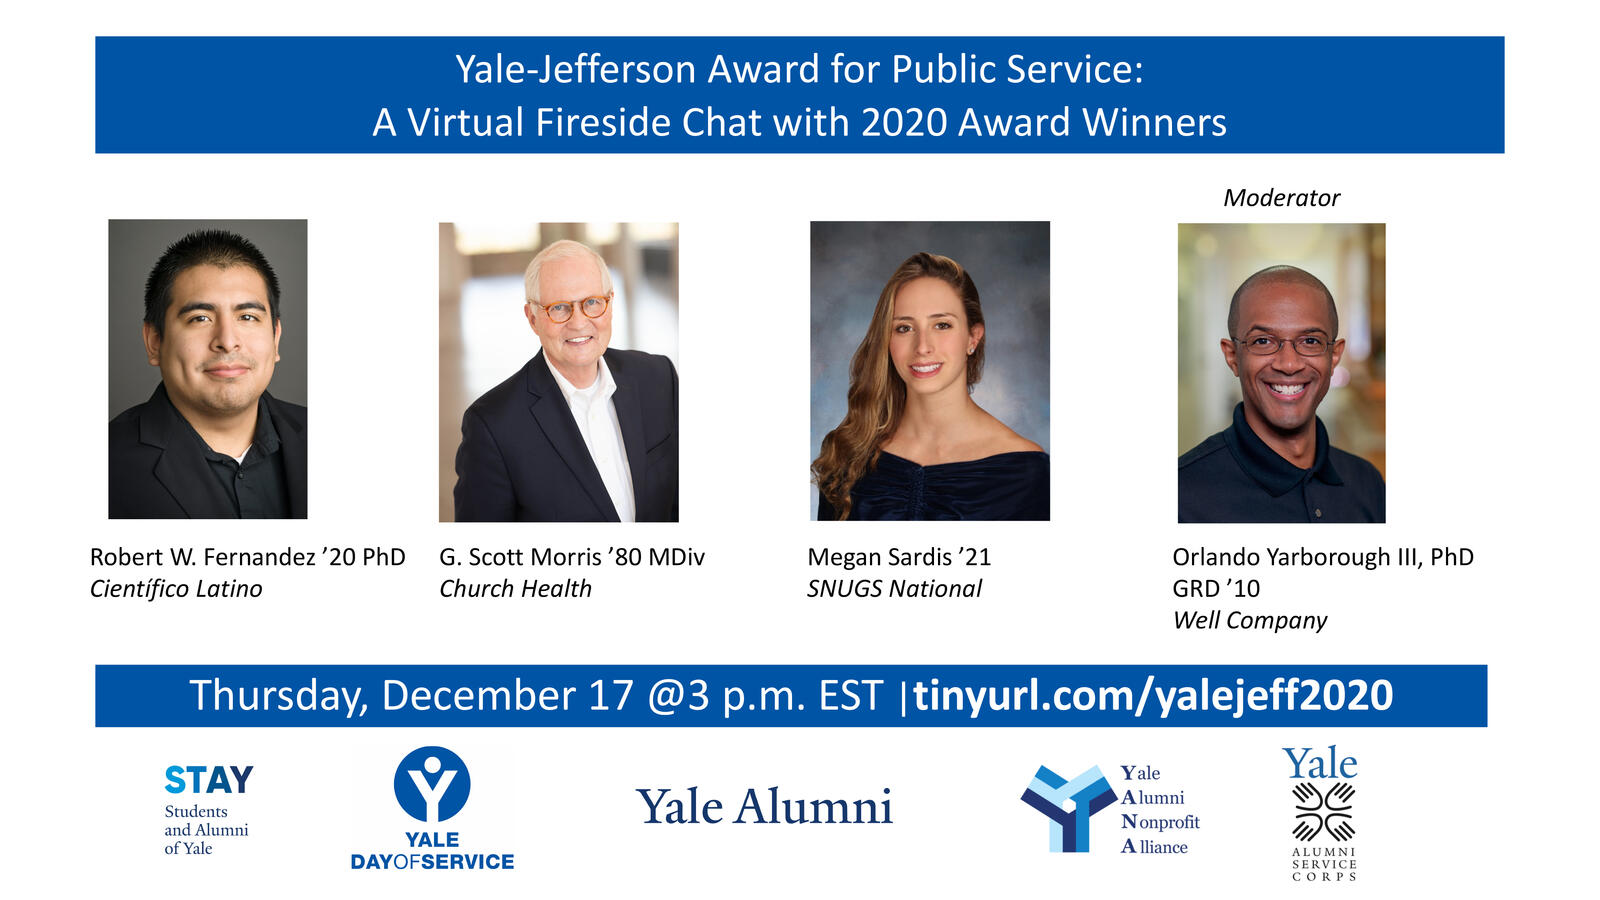 Yale-Jefferson Award Virtual Fireside Chat